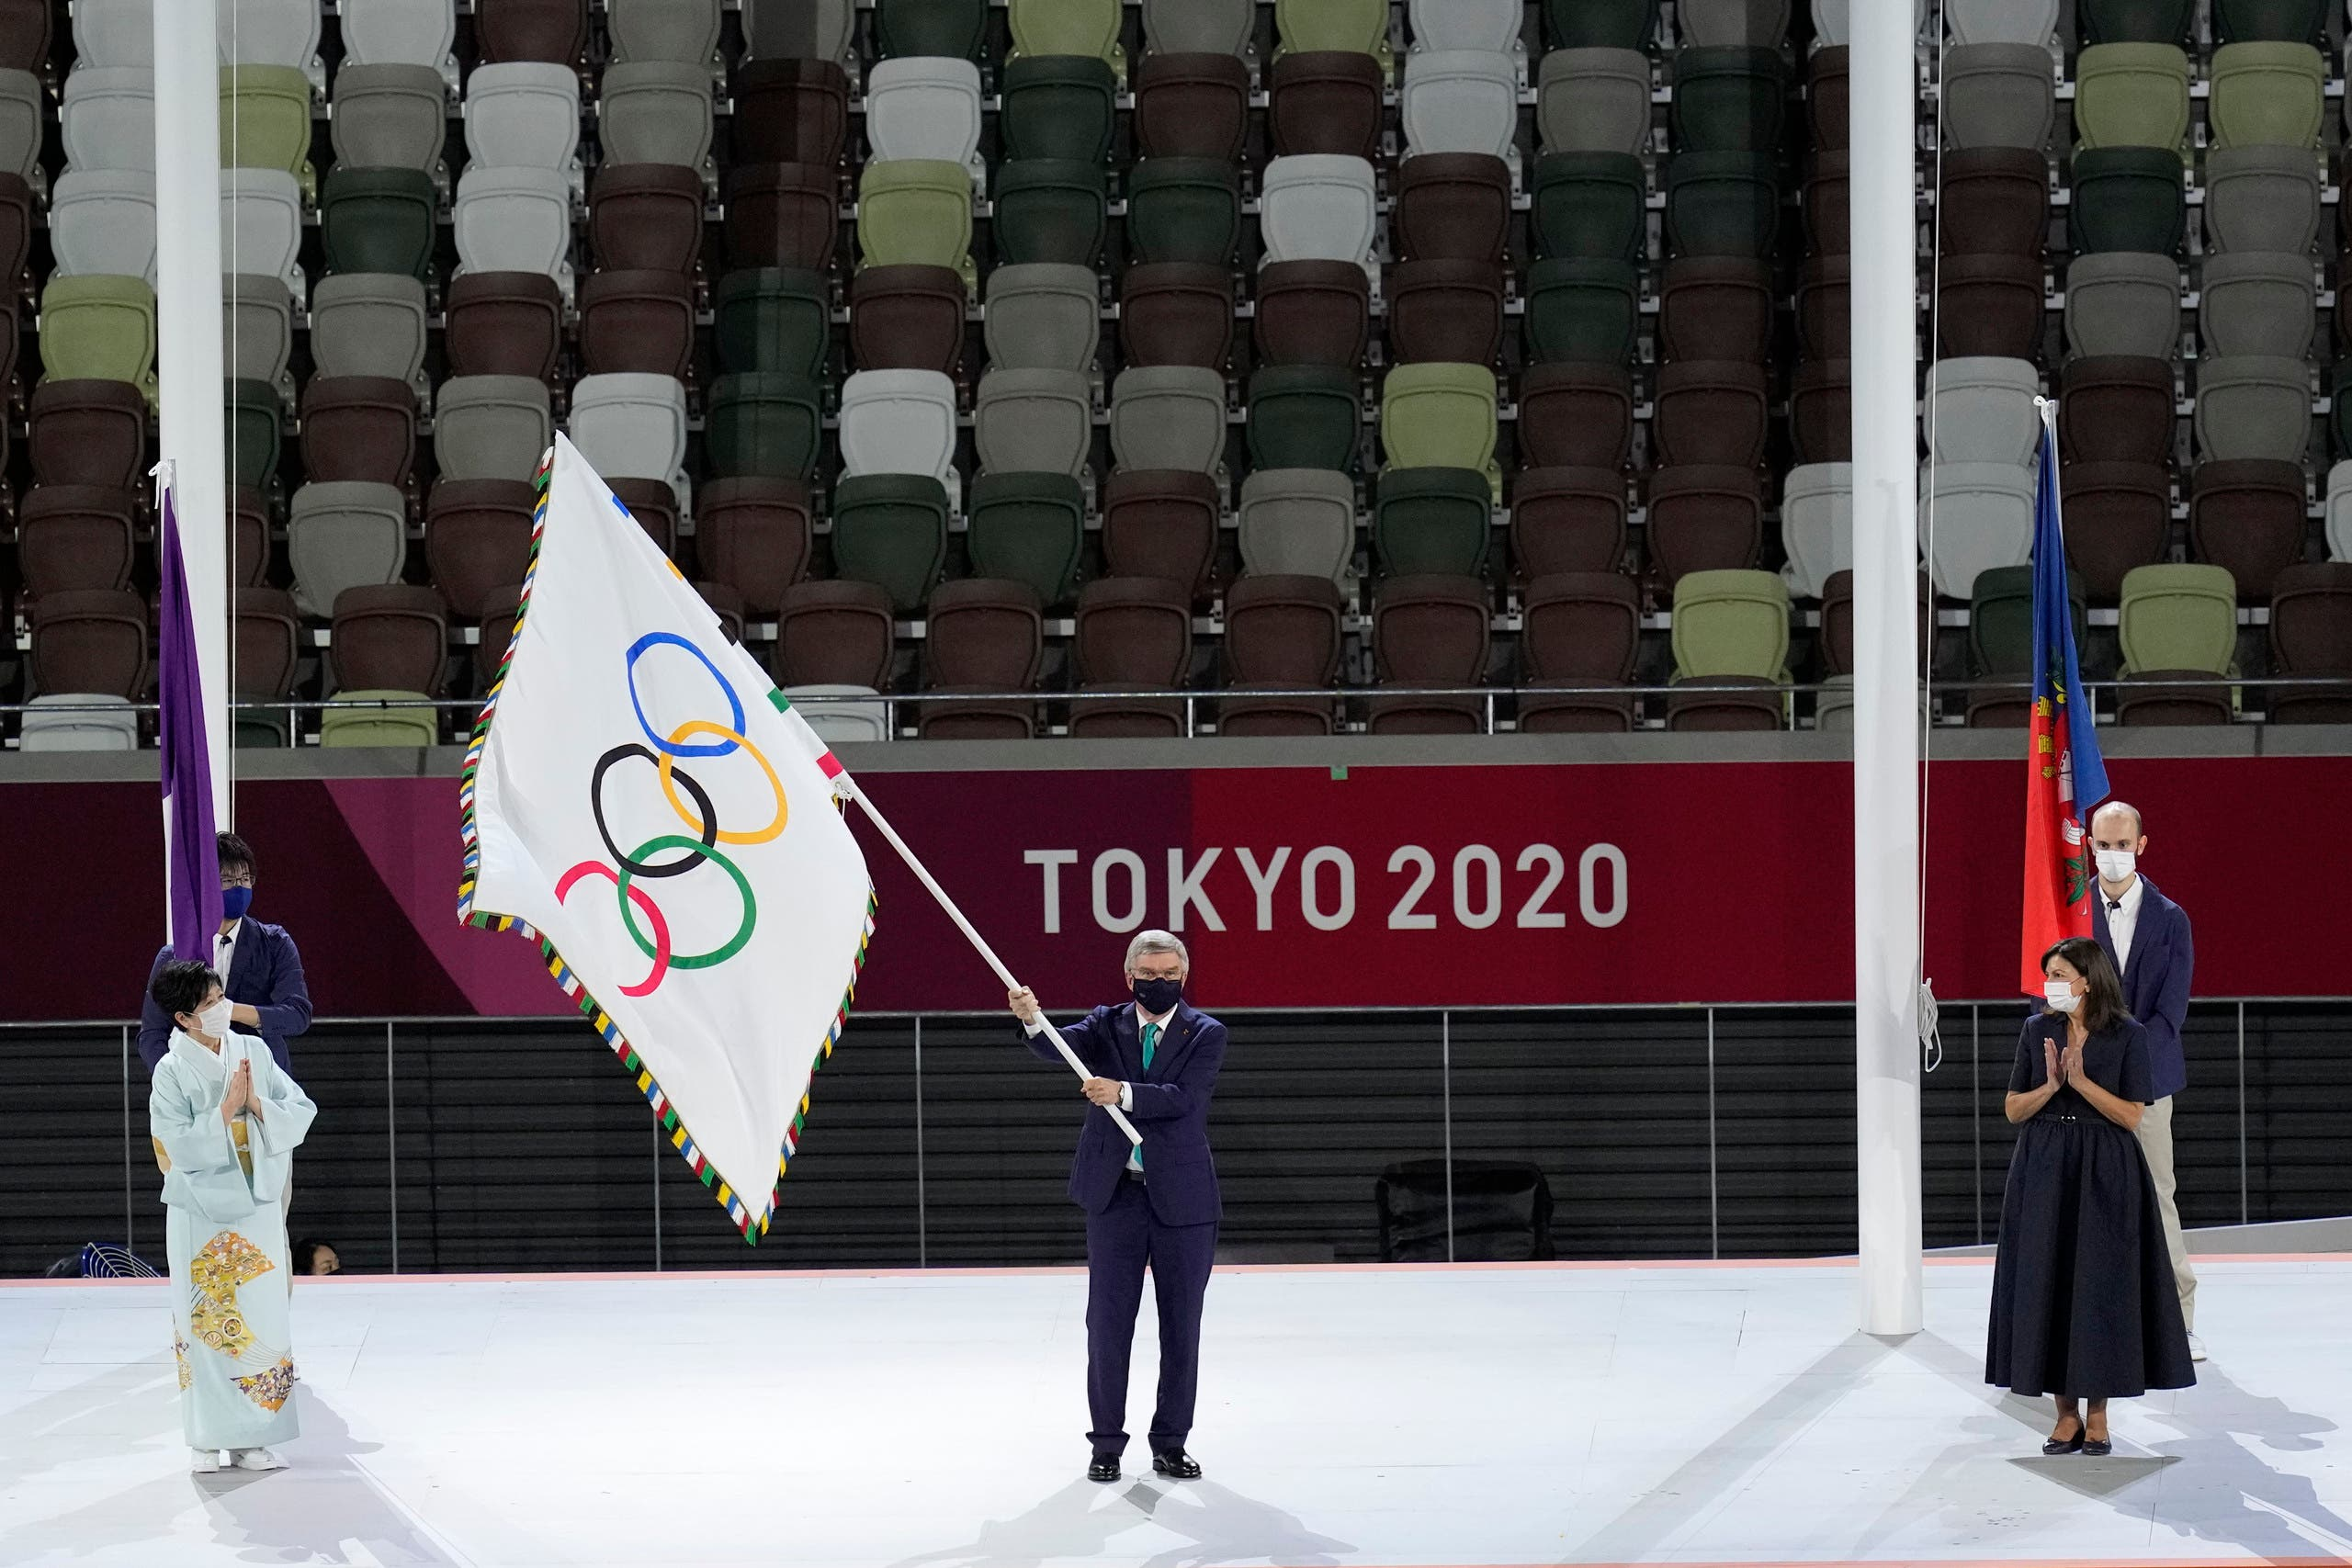 International Olympic Committee's President Thomas Bach waves the Olympic flag as Tokyo Gov. Yuriko Koike, left, and Paris mayor Anne Hidalgo, right, watch during the closing ceremony in the Olympic Stadium at the 2020 Summer Olympics, Sunday, Aug. 8, 2021, in Tokyo, Japan. (AP)